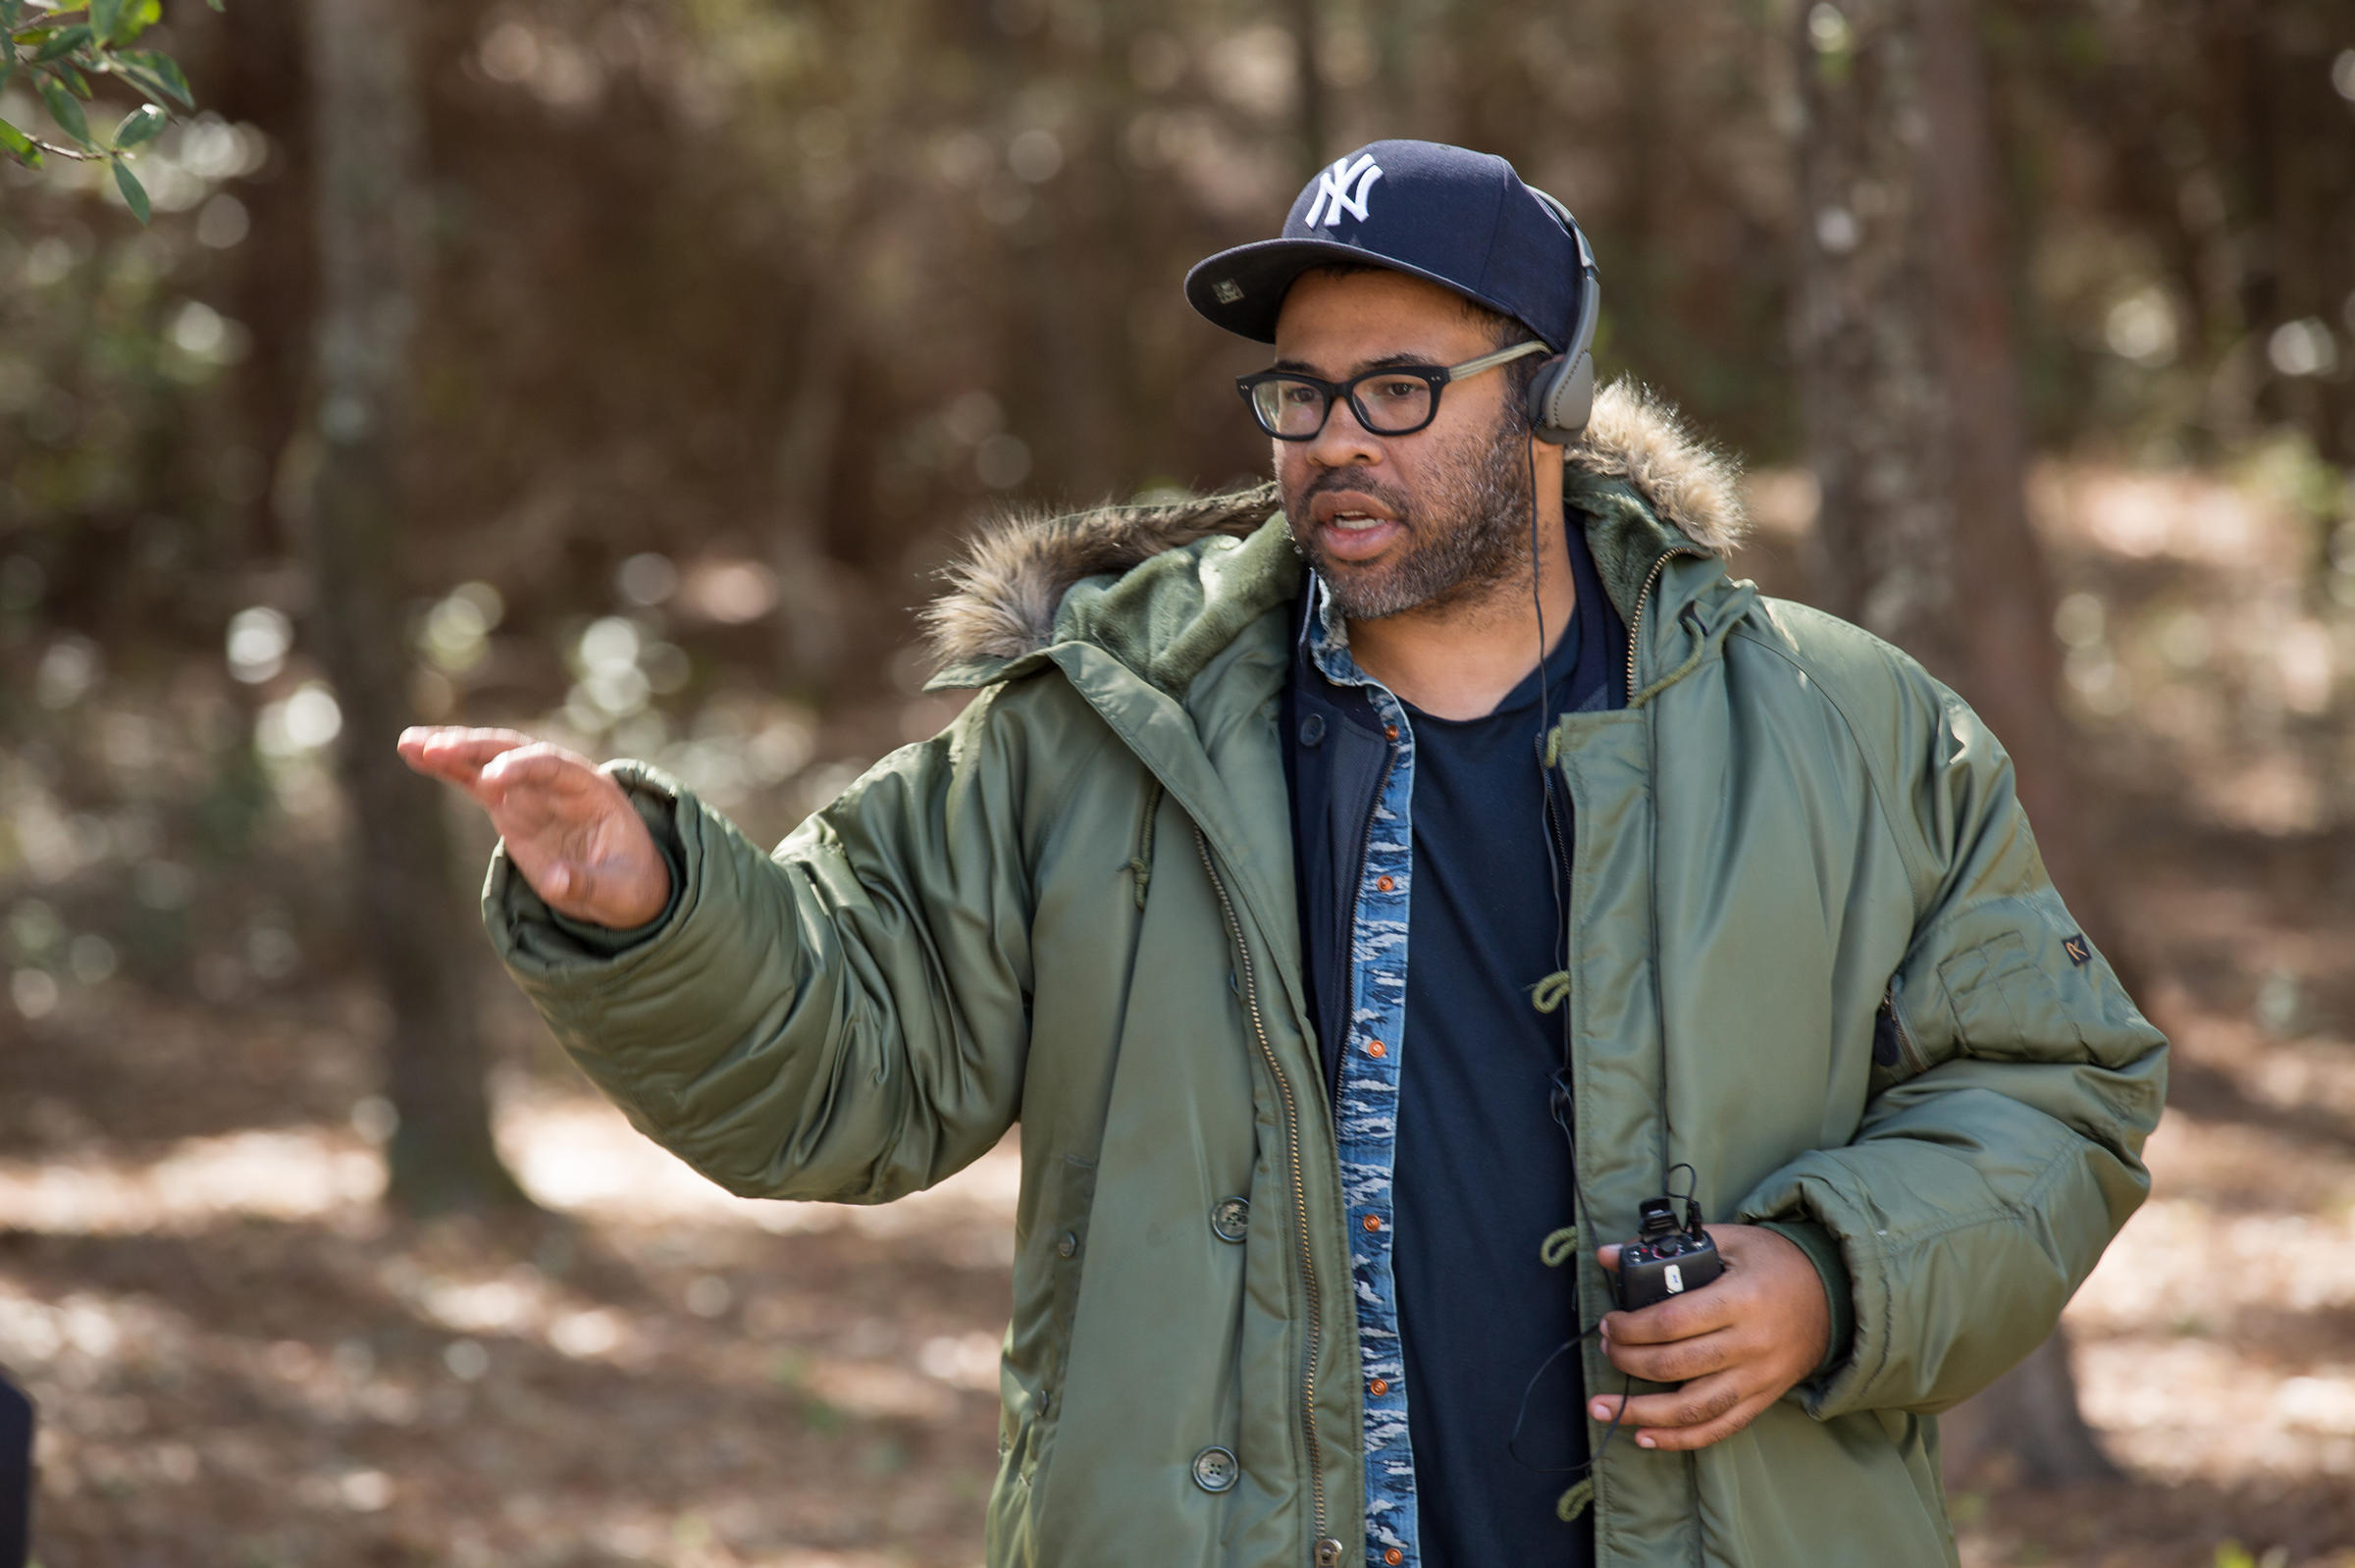 The horror the horror get out and the place of race in scary writer director producer jordan peele directs a scene on the set of his new horror movie get out sciox Choice Image